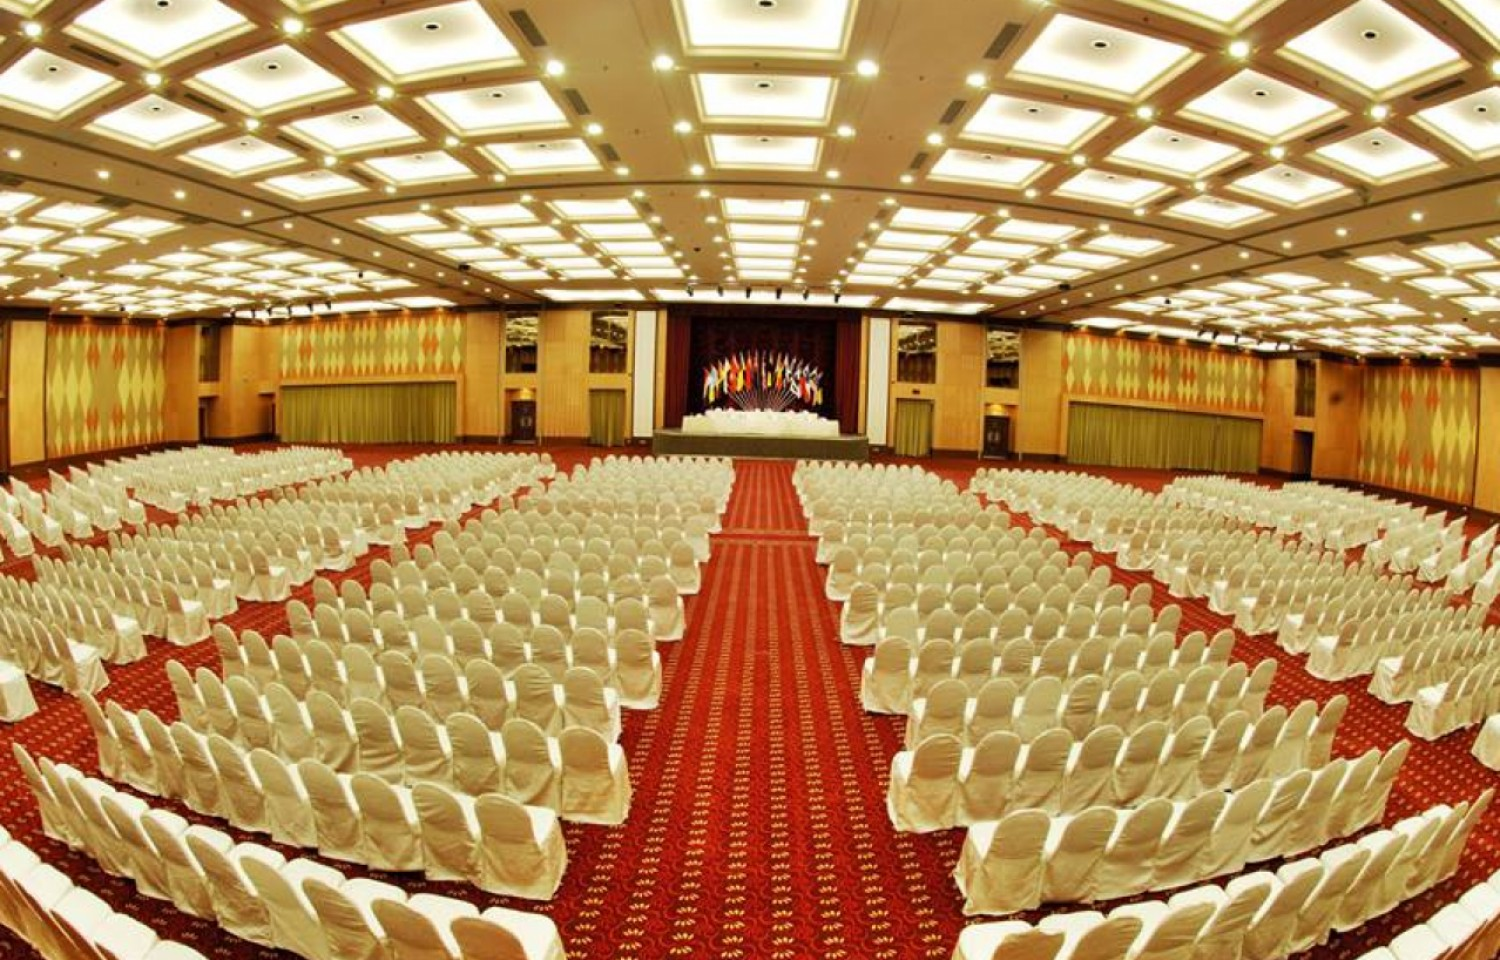 PersadaJohorInternationalConventionCentre1485153973.jpg